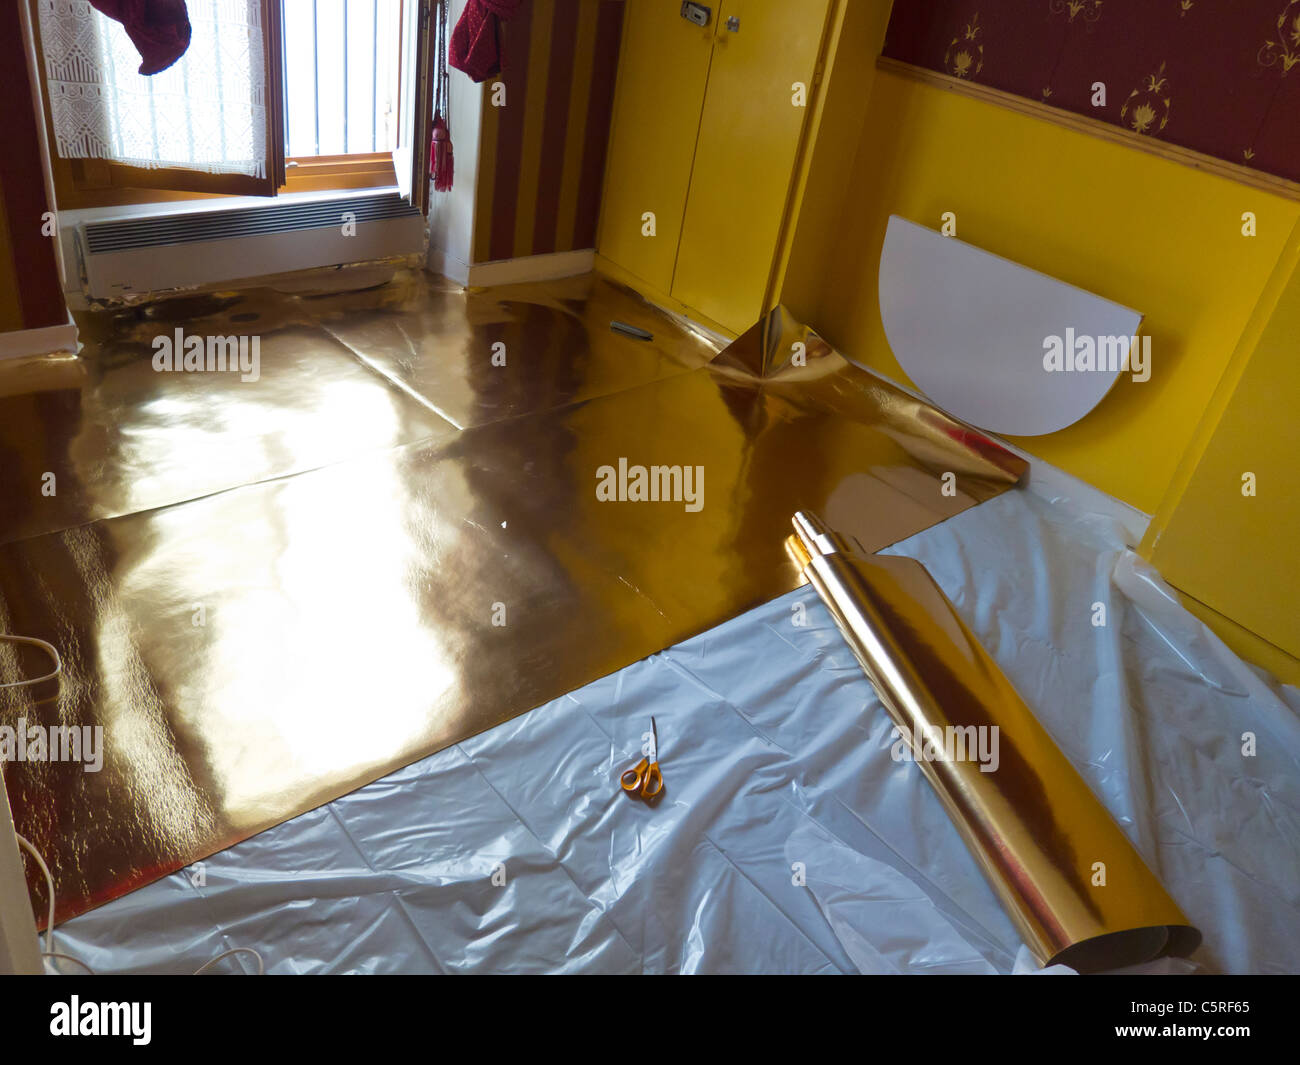 Insulation under floor work site room inside interior stock photos do it yourself wooden flooring installation at home with insulation on floor solutioingenieria Choice Image